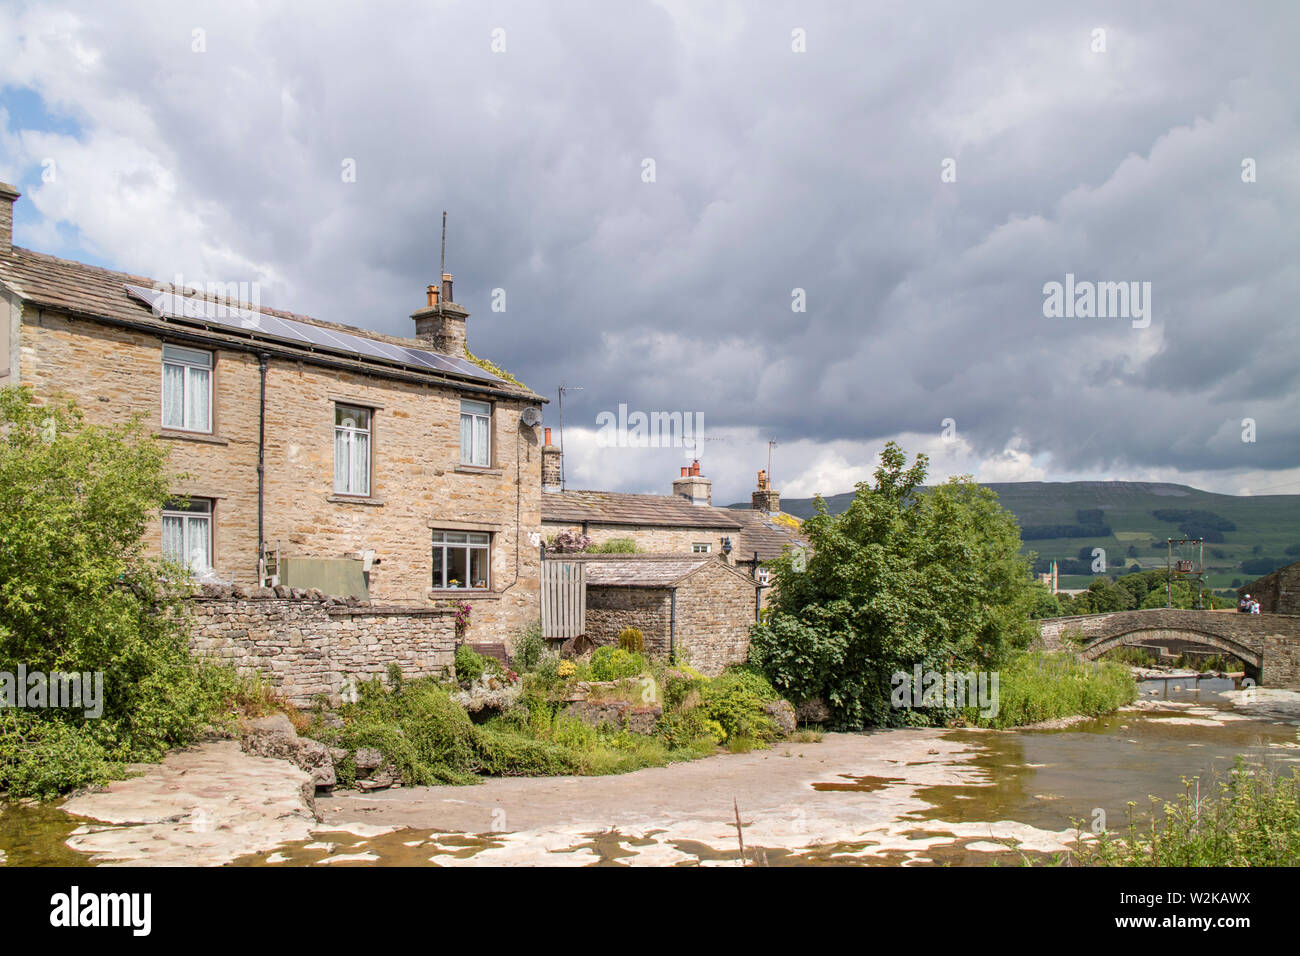 The attractive village of Gale Wensleydale, Yorkshire Dales National Park, North Yorkshire, England Stock Photo